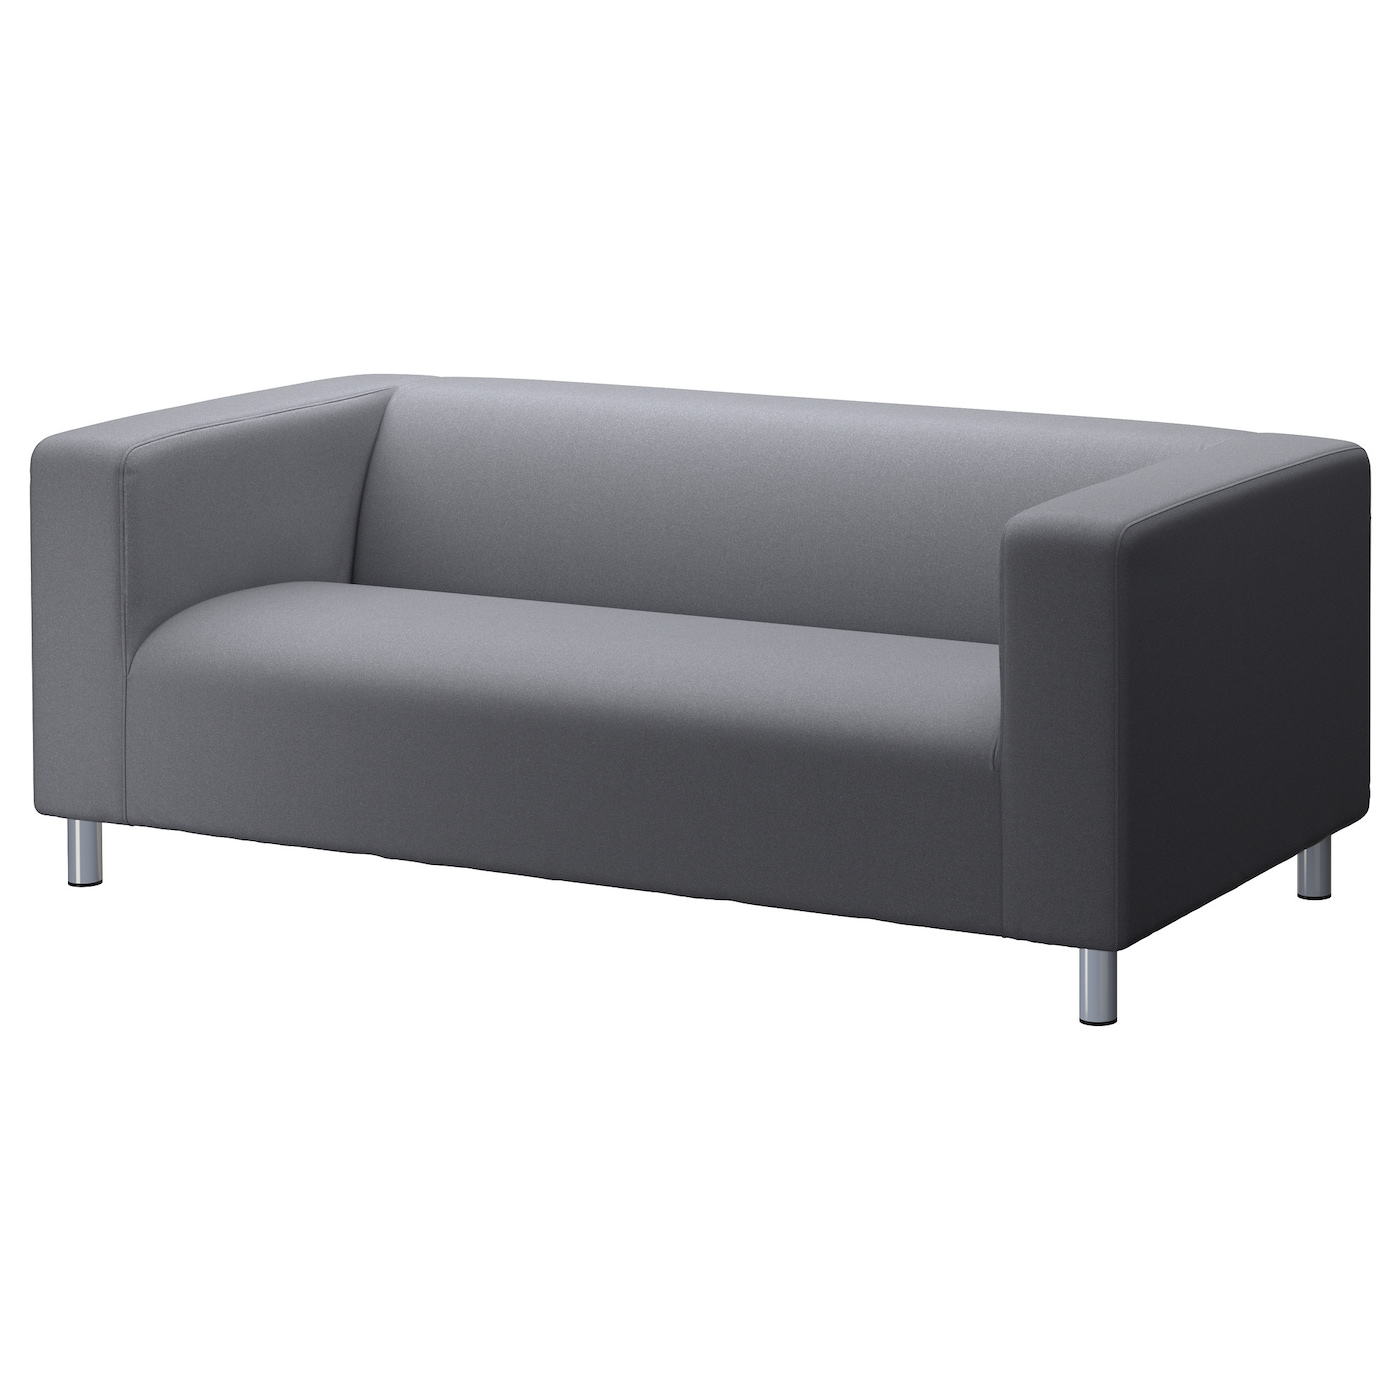 Klippan cover two seat sofa flackarp grey ikea - Klippan sofa ikea ...